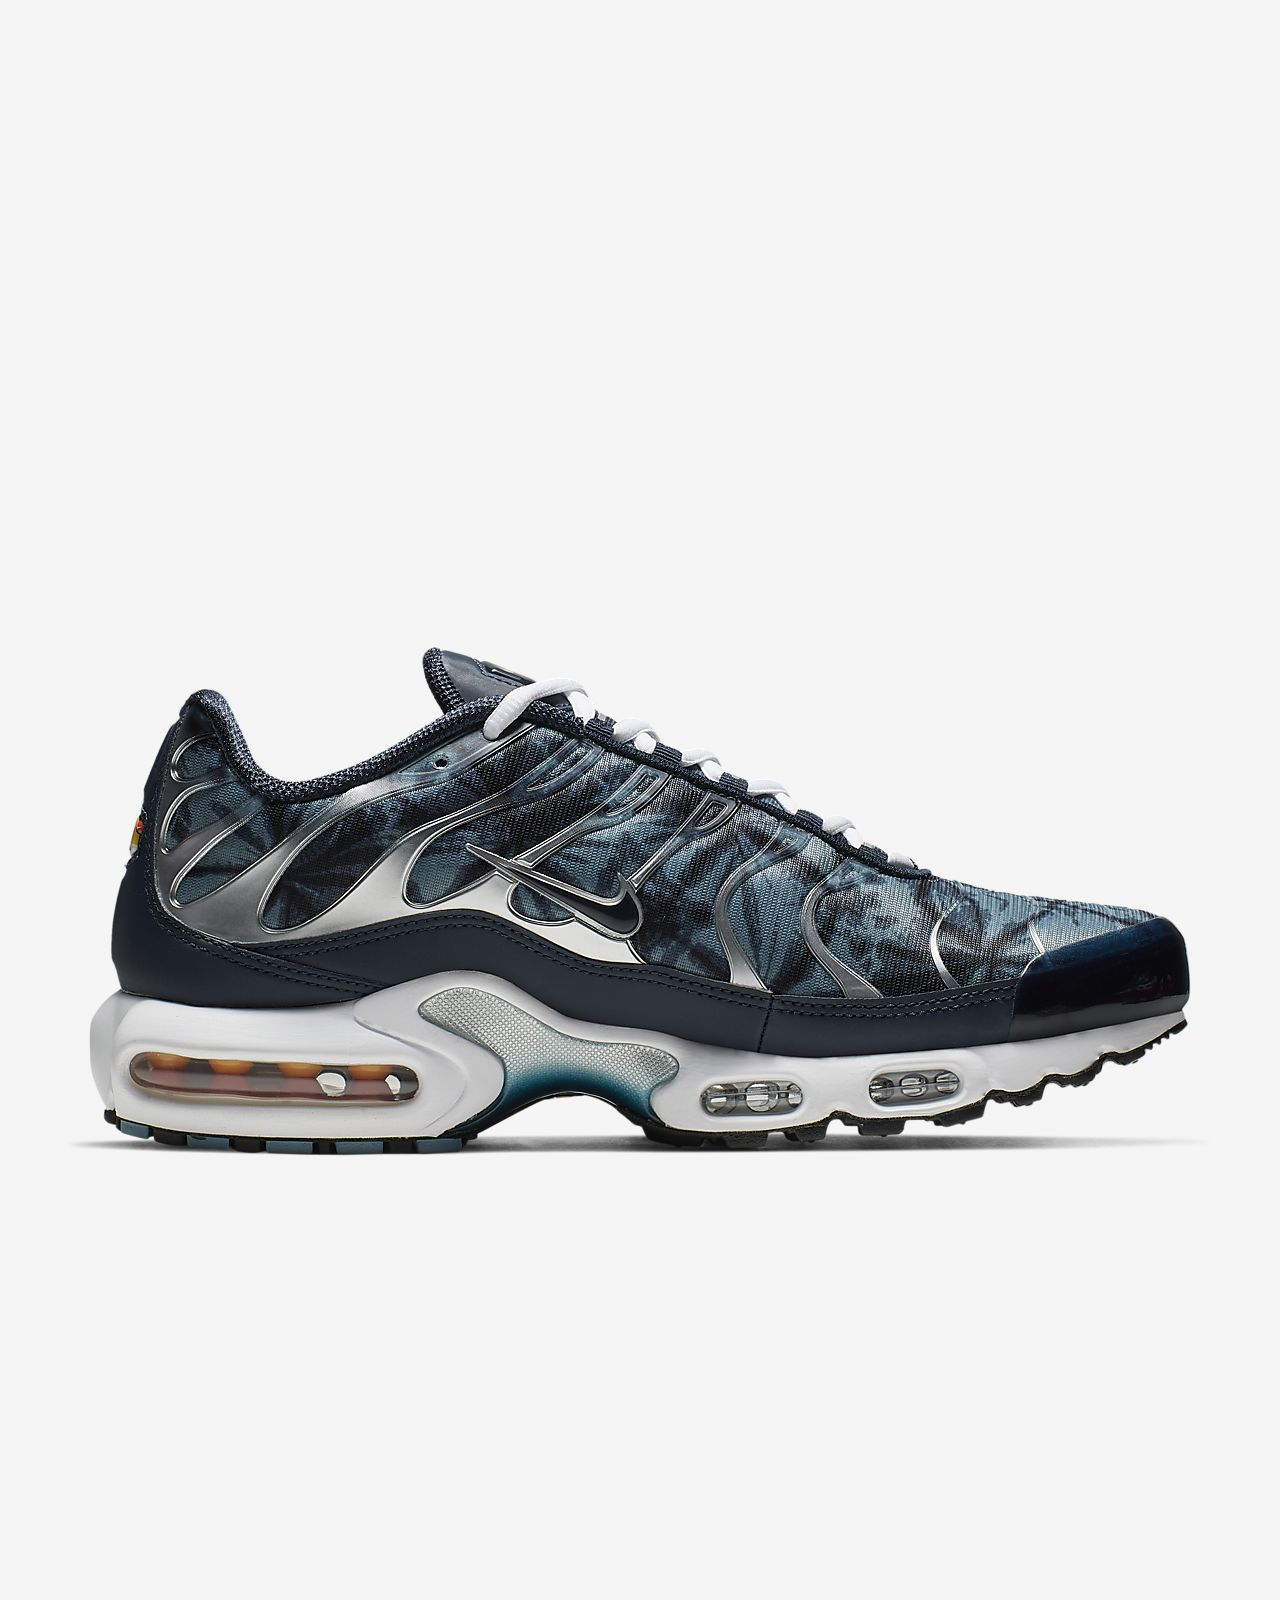 Plus Air Chaussure Nike Max Og wm8OyNnP0v